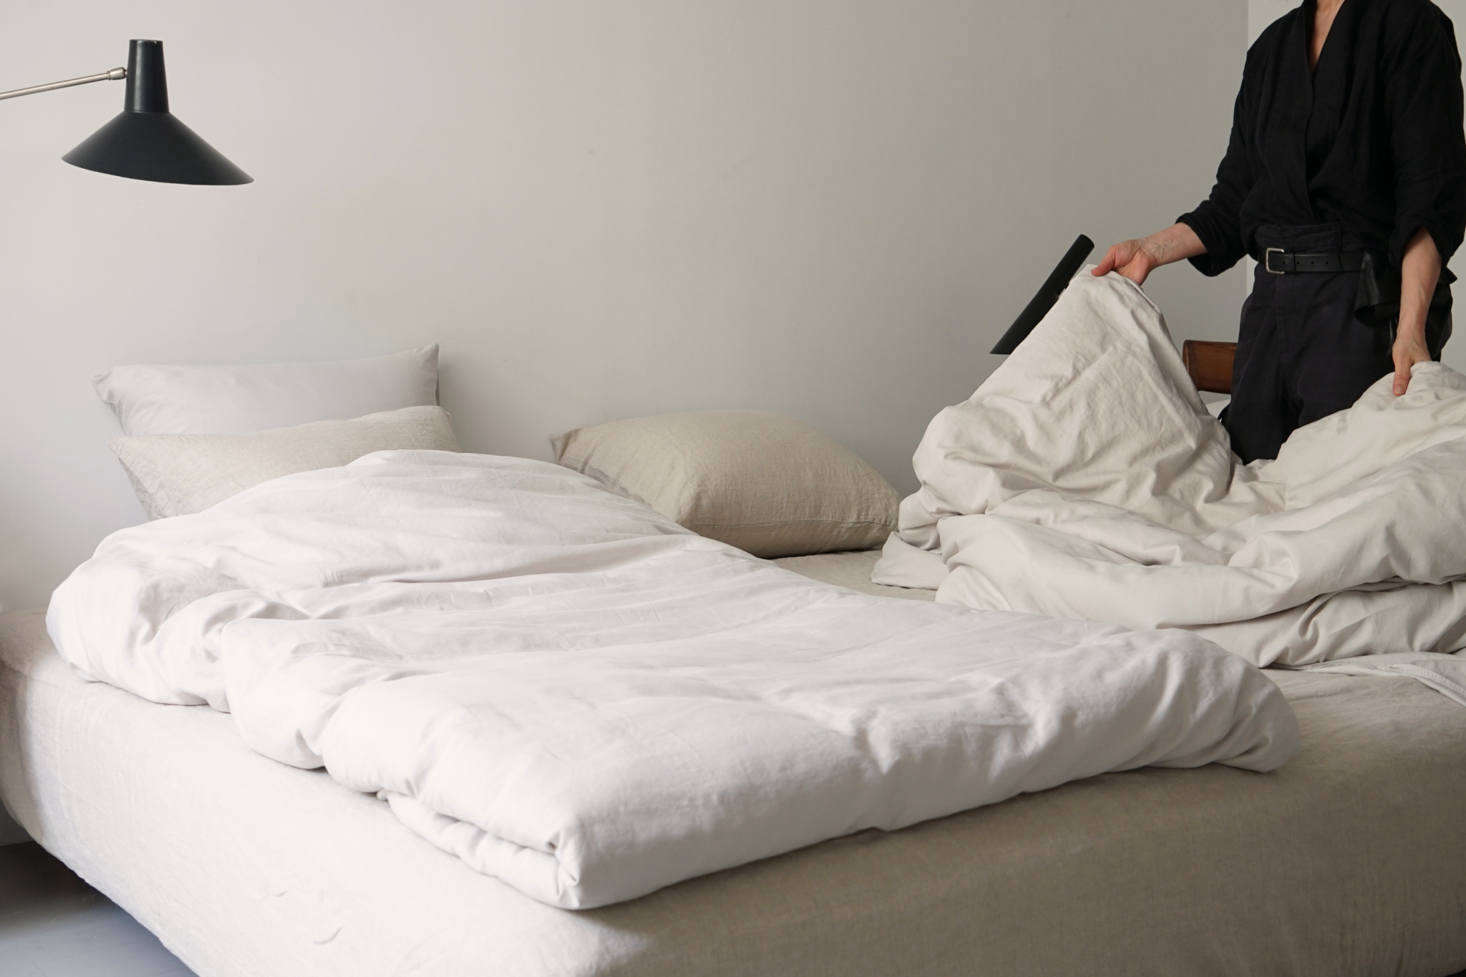 Think burrito-style: fold in the sides of each comforter and flip the bottom up, then turn over. Position side by side, so each duvet has equal real estate.